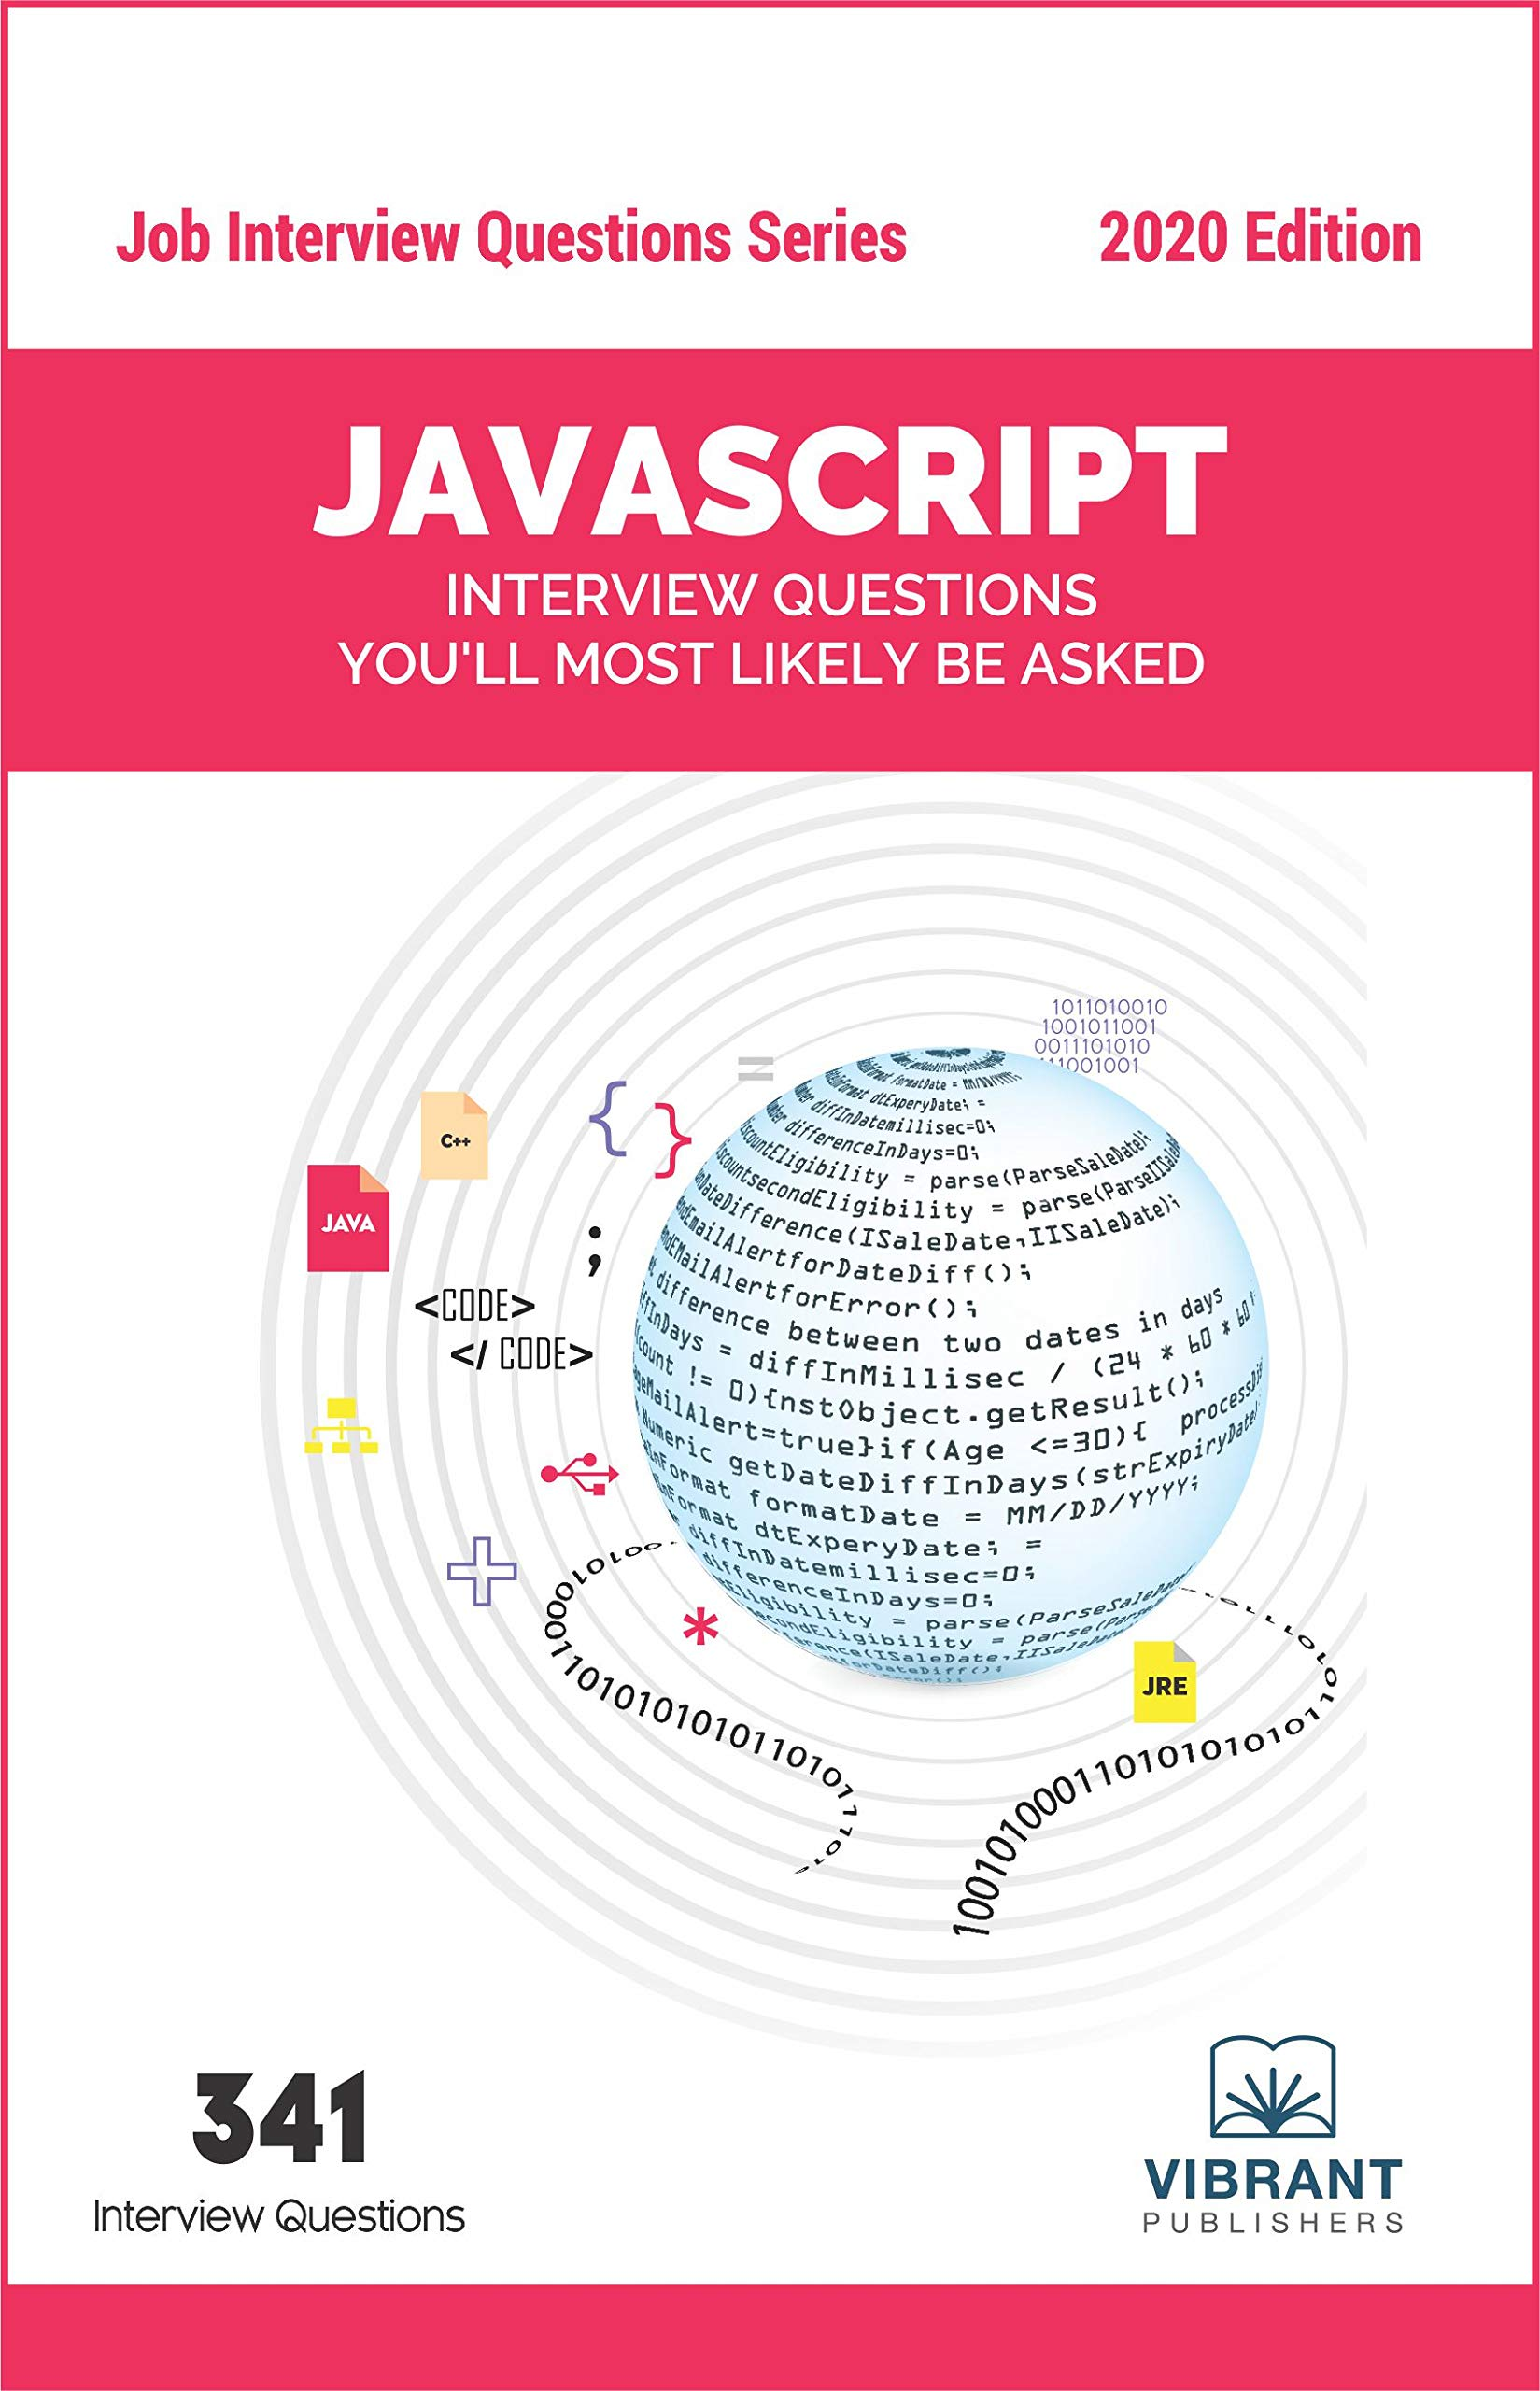 JavaScript Interview Questions You'll Most Likely Be Asked (Job Interview Questions Book 18)